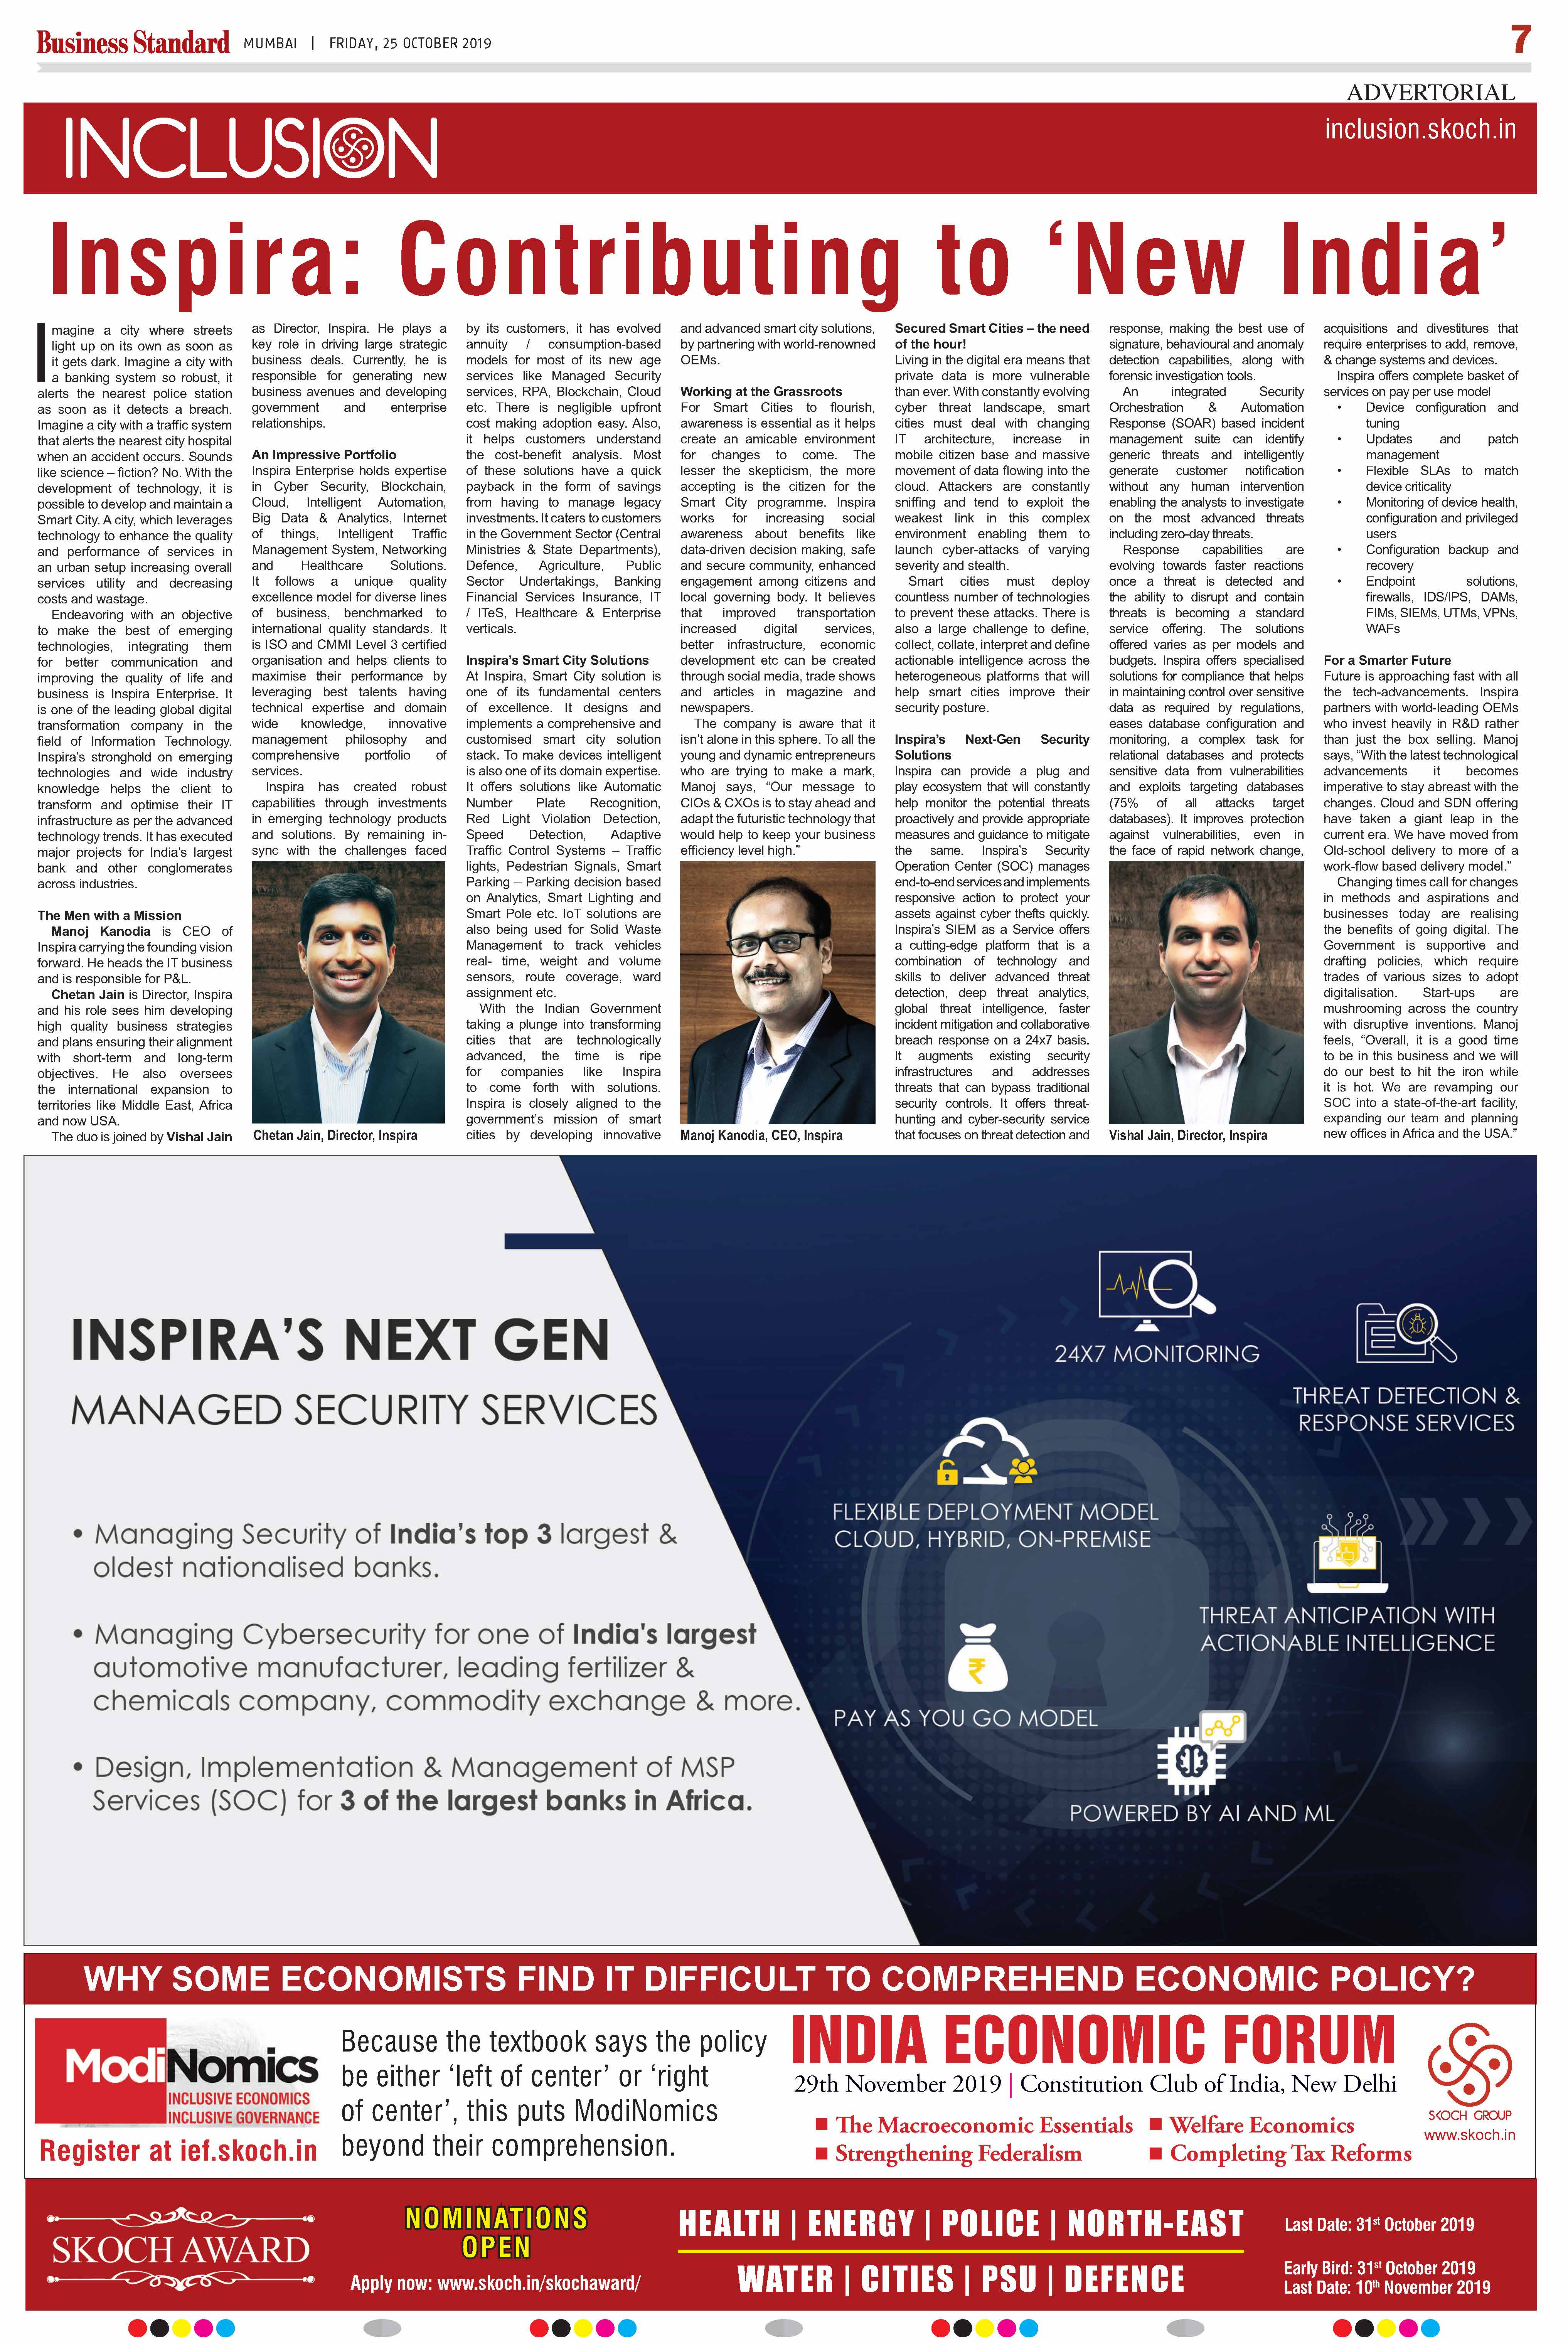 SKOCH Feature published in the Business Standard across all editions nationwide on 25th October 2019